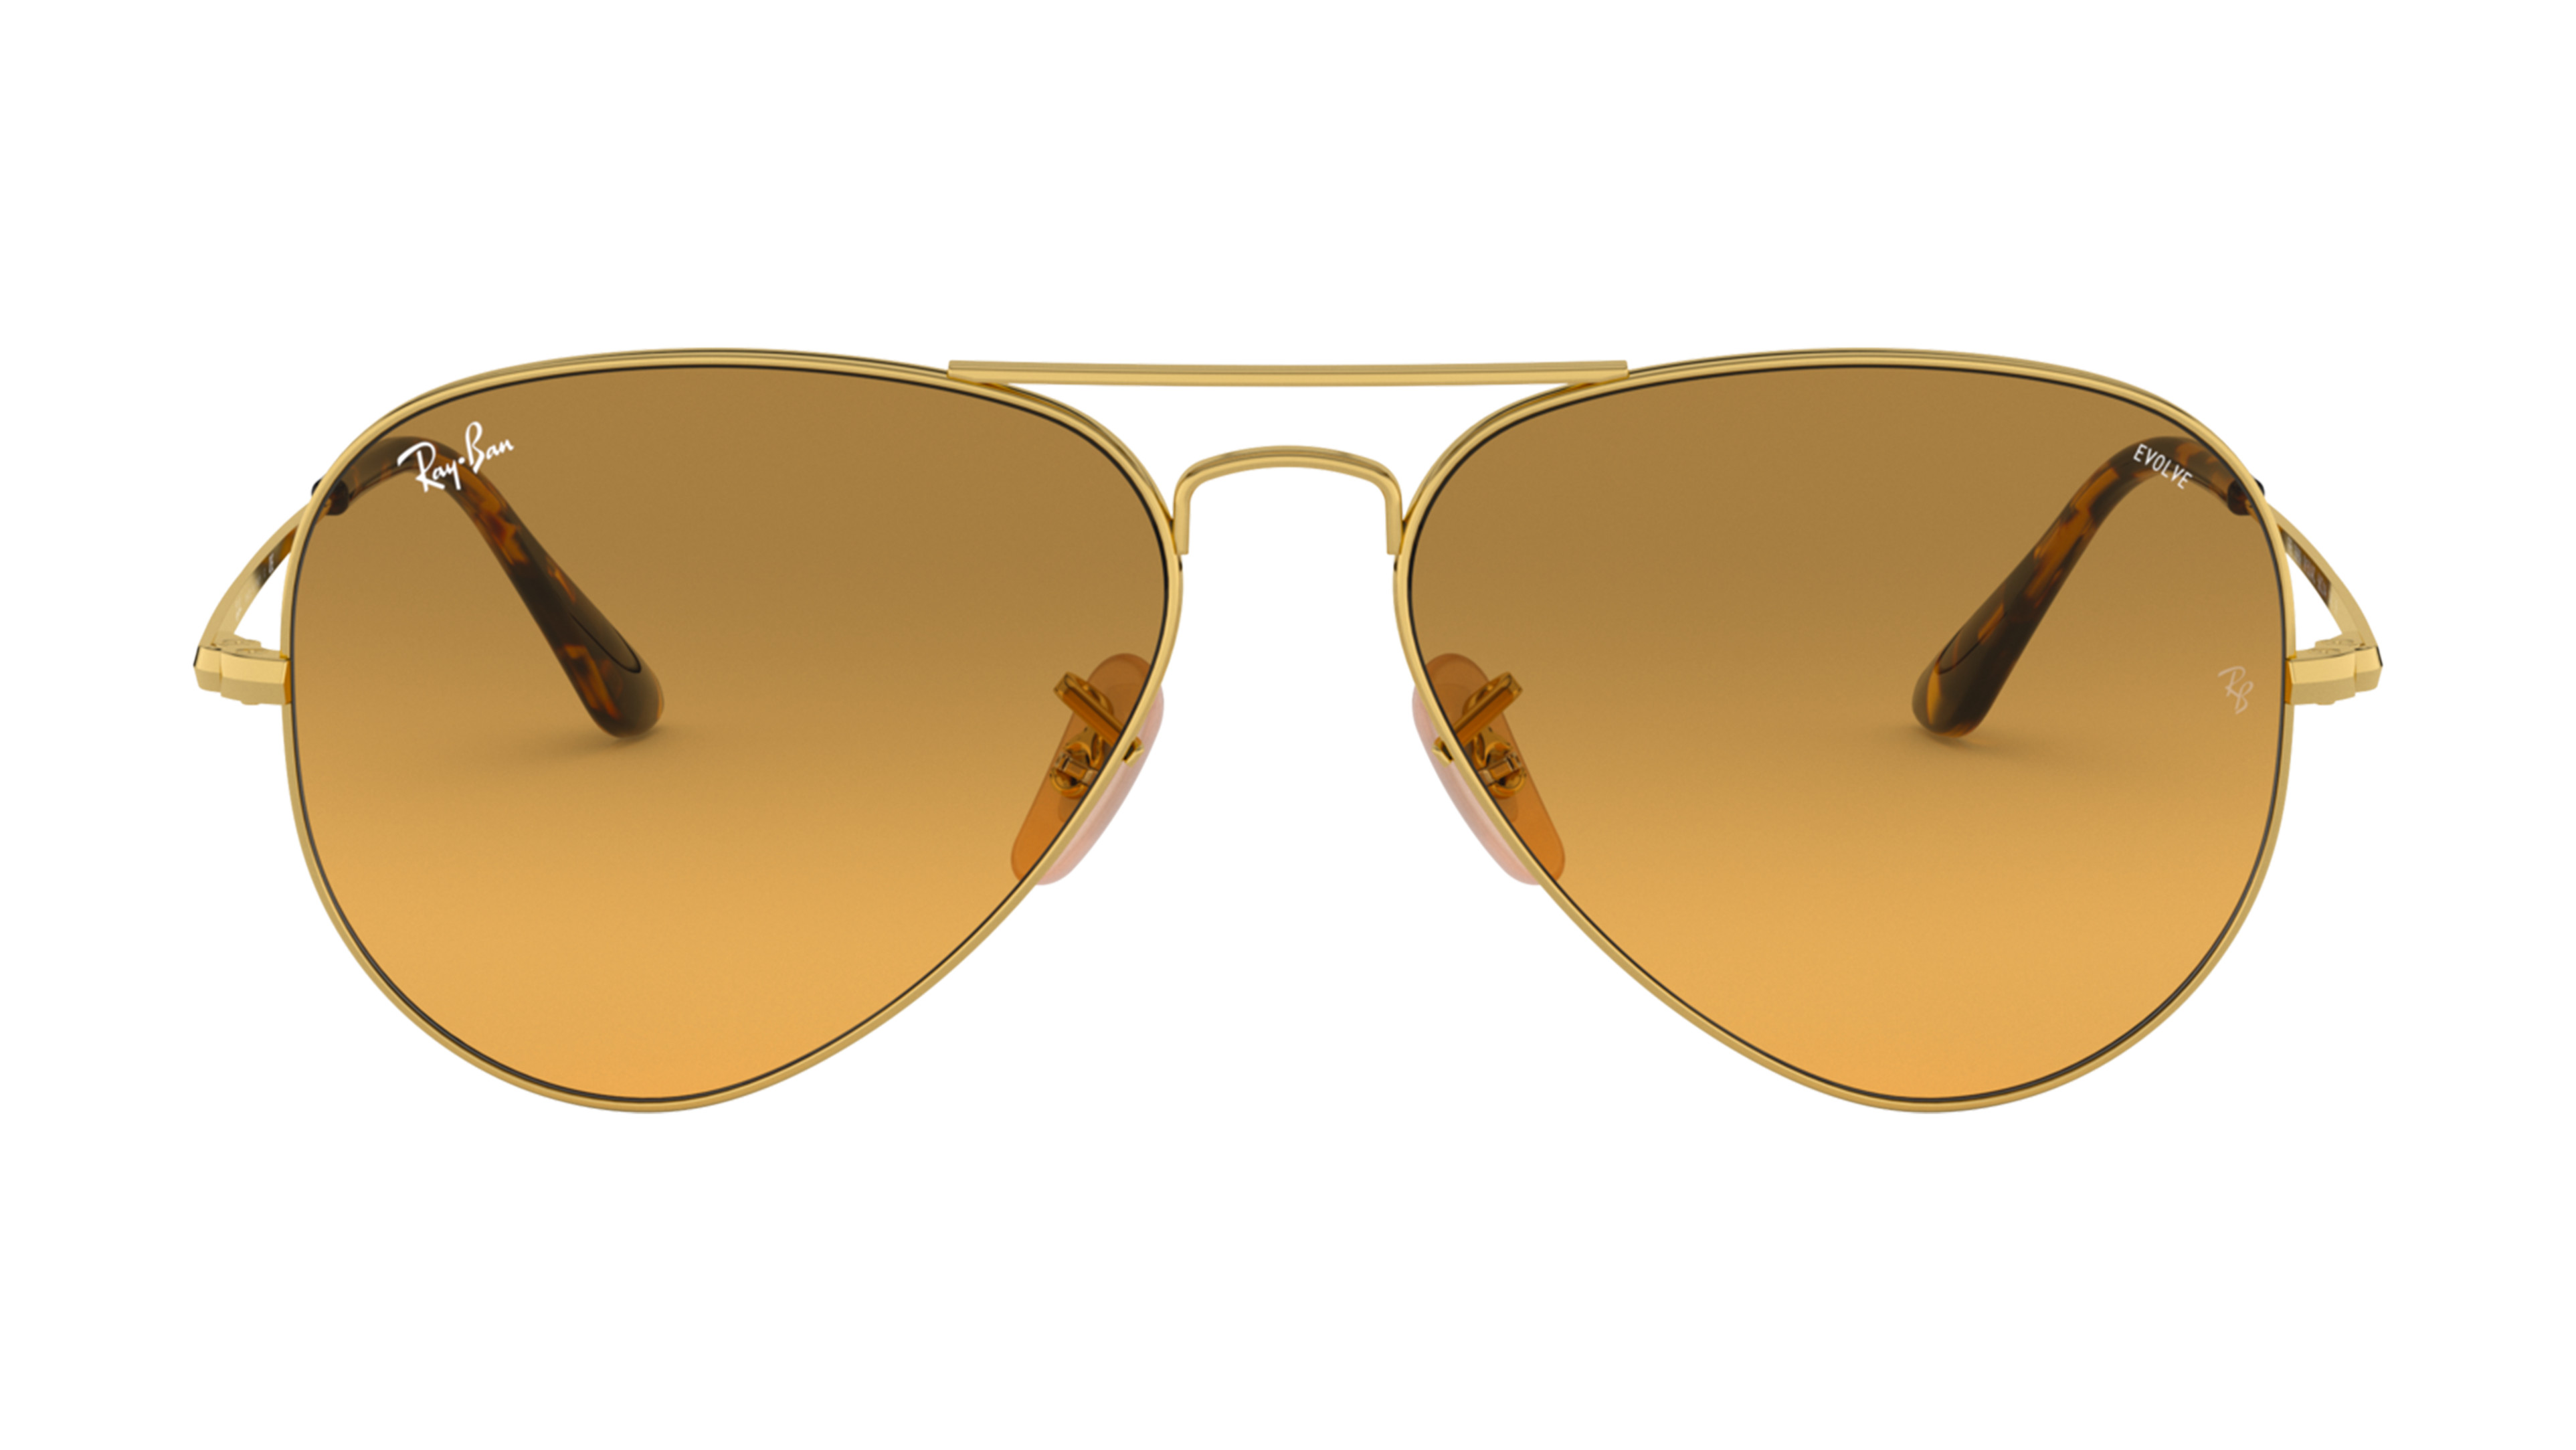 8056597041973_Front_RayBan